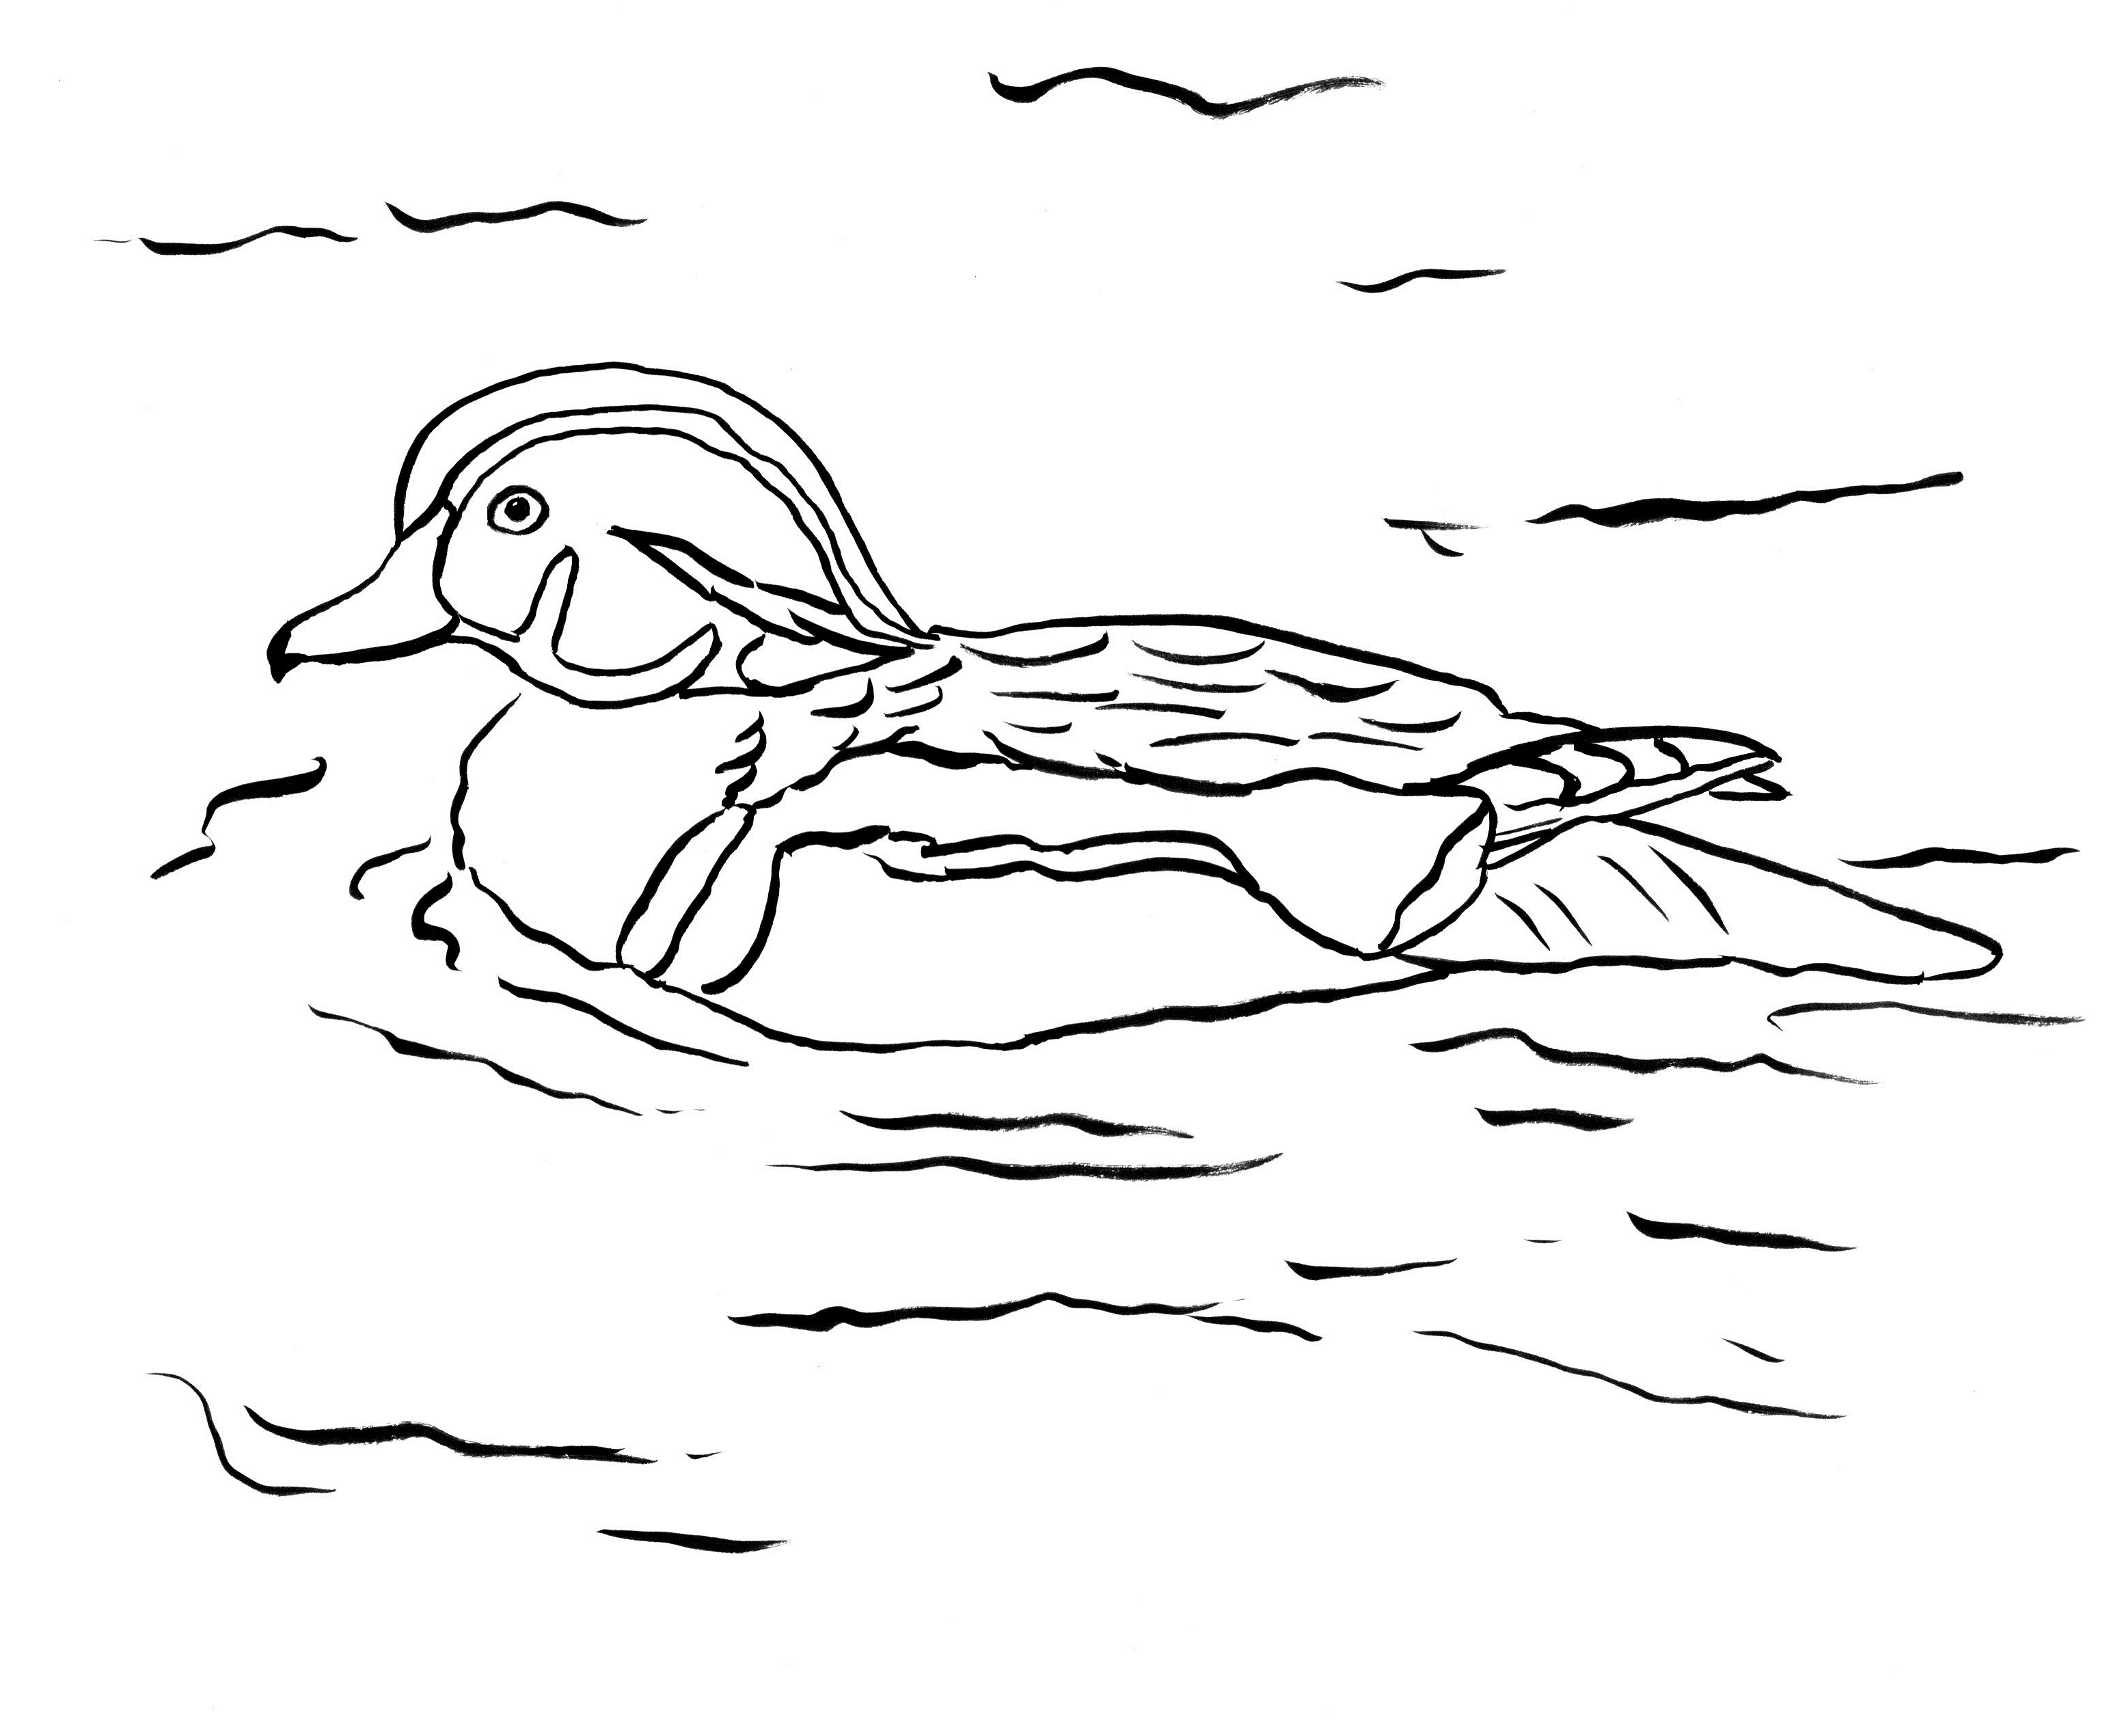 coloring image of duck printable duck coloring pages for kids cool2bkids coloring image duck of